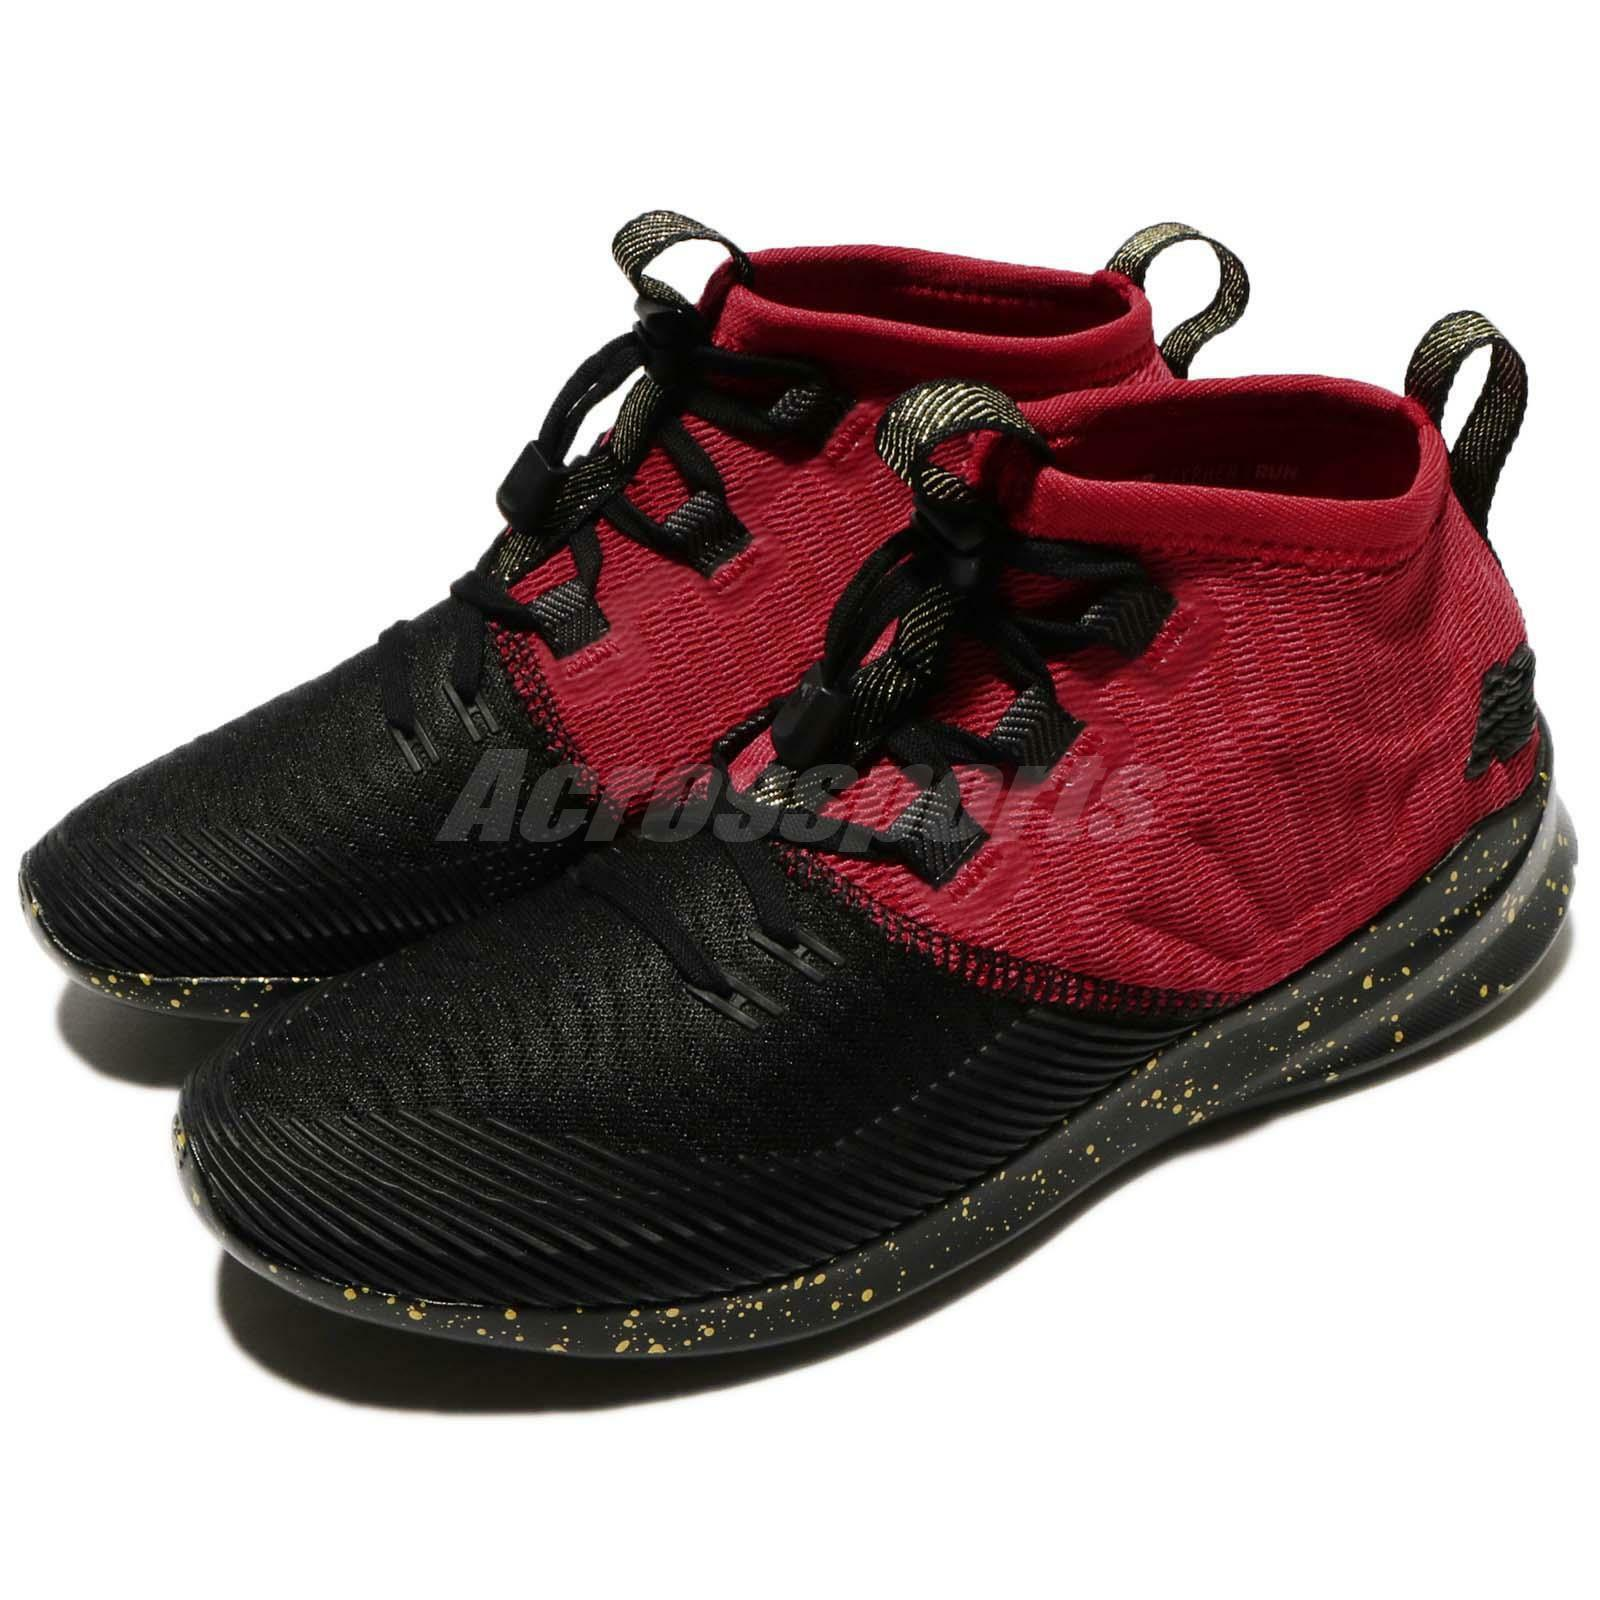 New Balance USRMCYC D CNY Year Of The Dog rojo Men Running zapatos zapatilla de deporte USRMCYCD